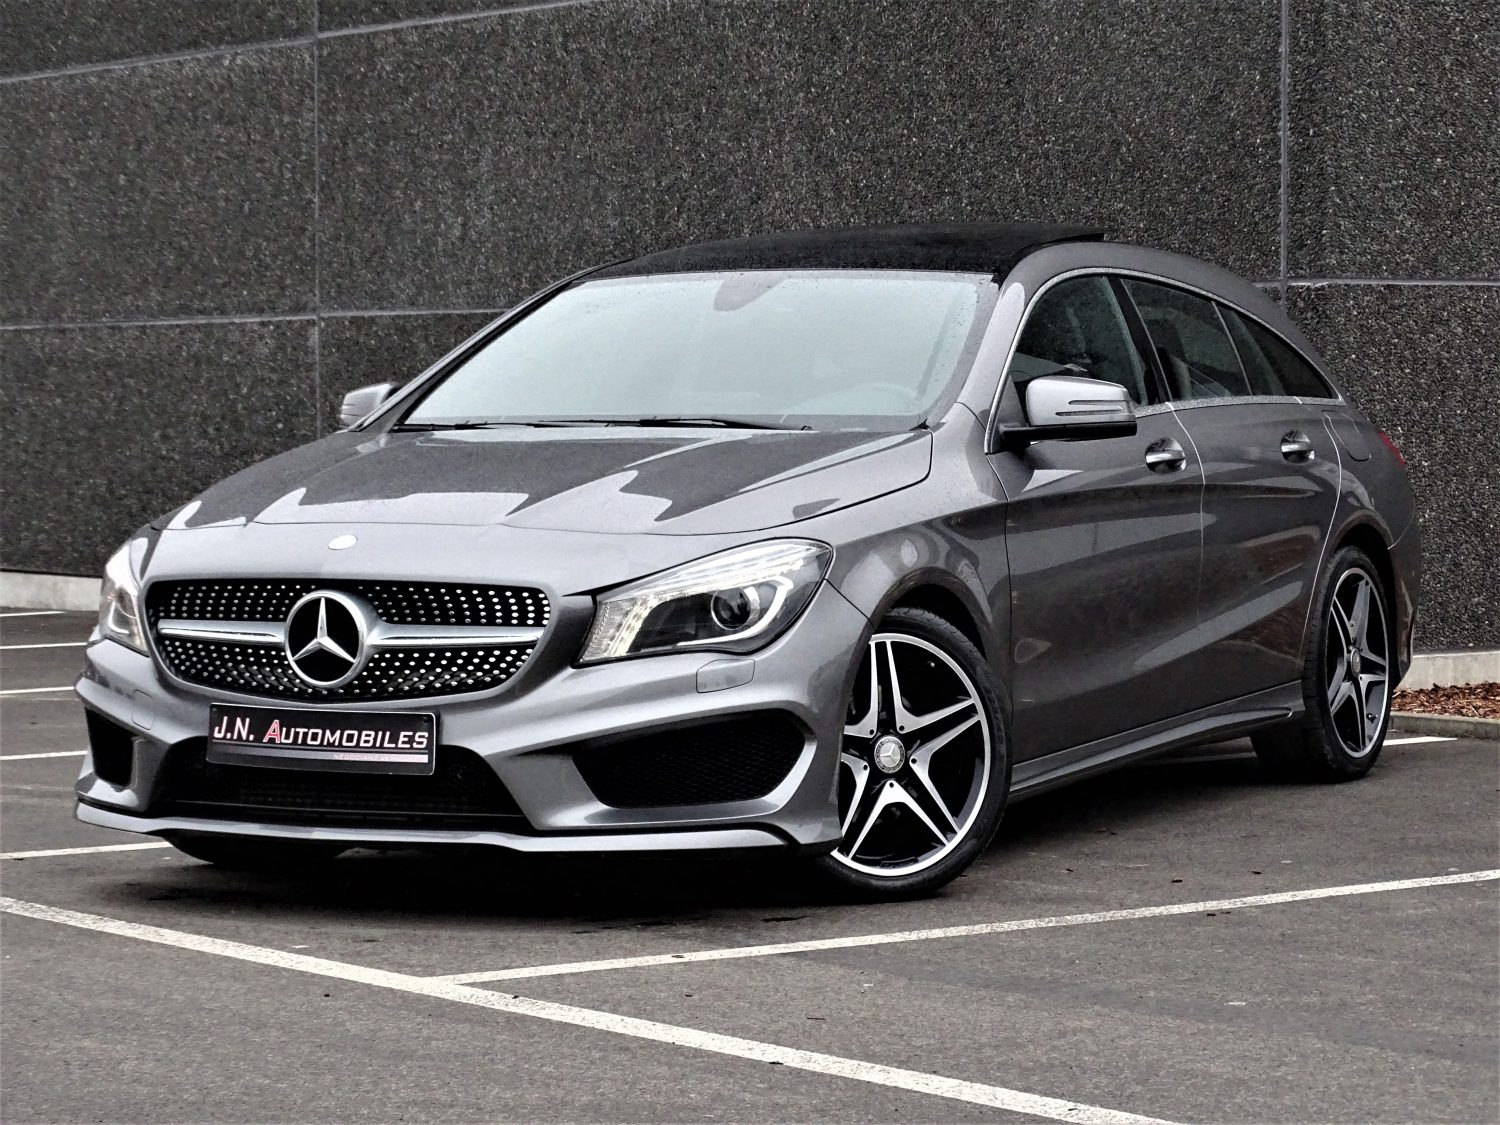 mercedes benz cla 200 shooting brake amg vendue j n. Black Bedroom Furniture Sets. Home Design Ideas